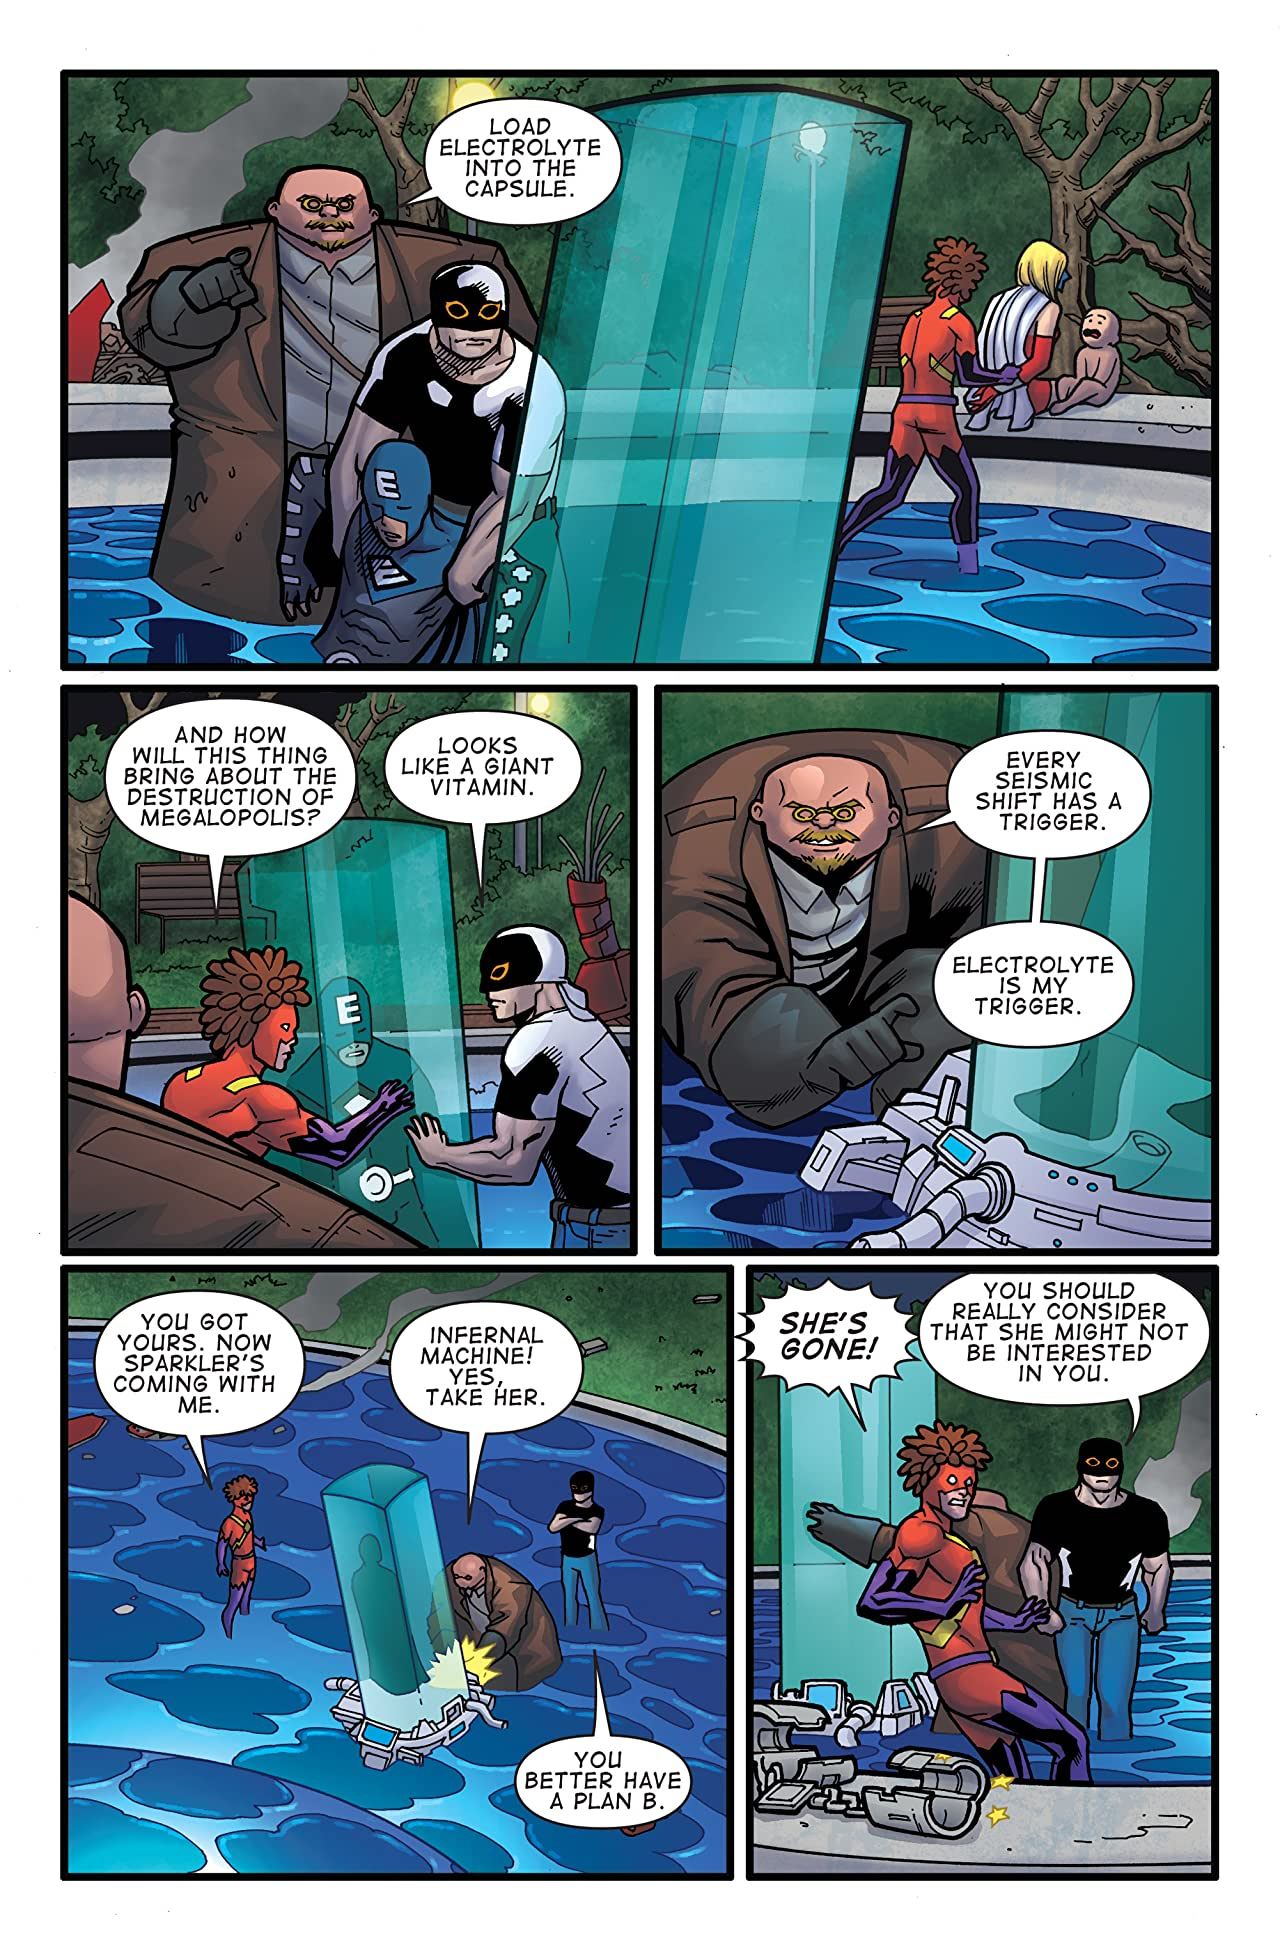 The Misadventures of Electrolyte and The Justice Purveyors #8